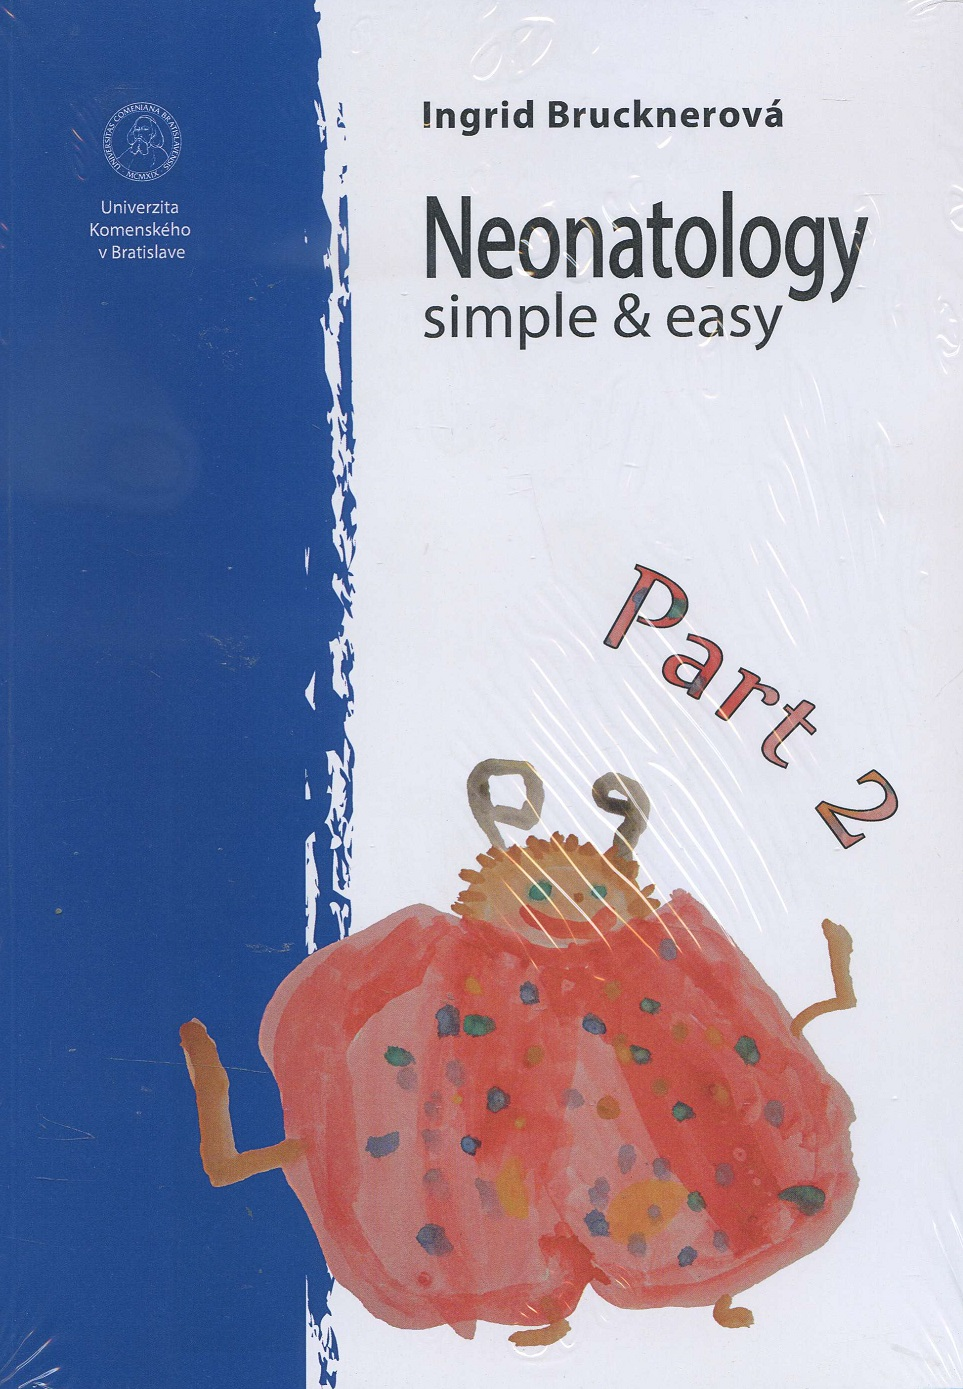 Neonatology simple & easy - Part 2